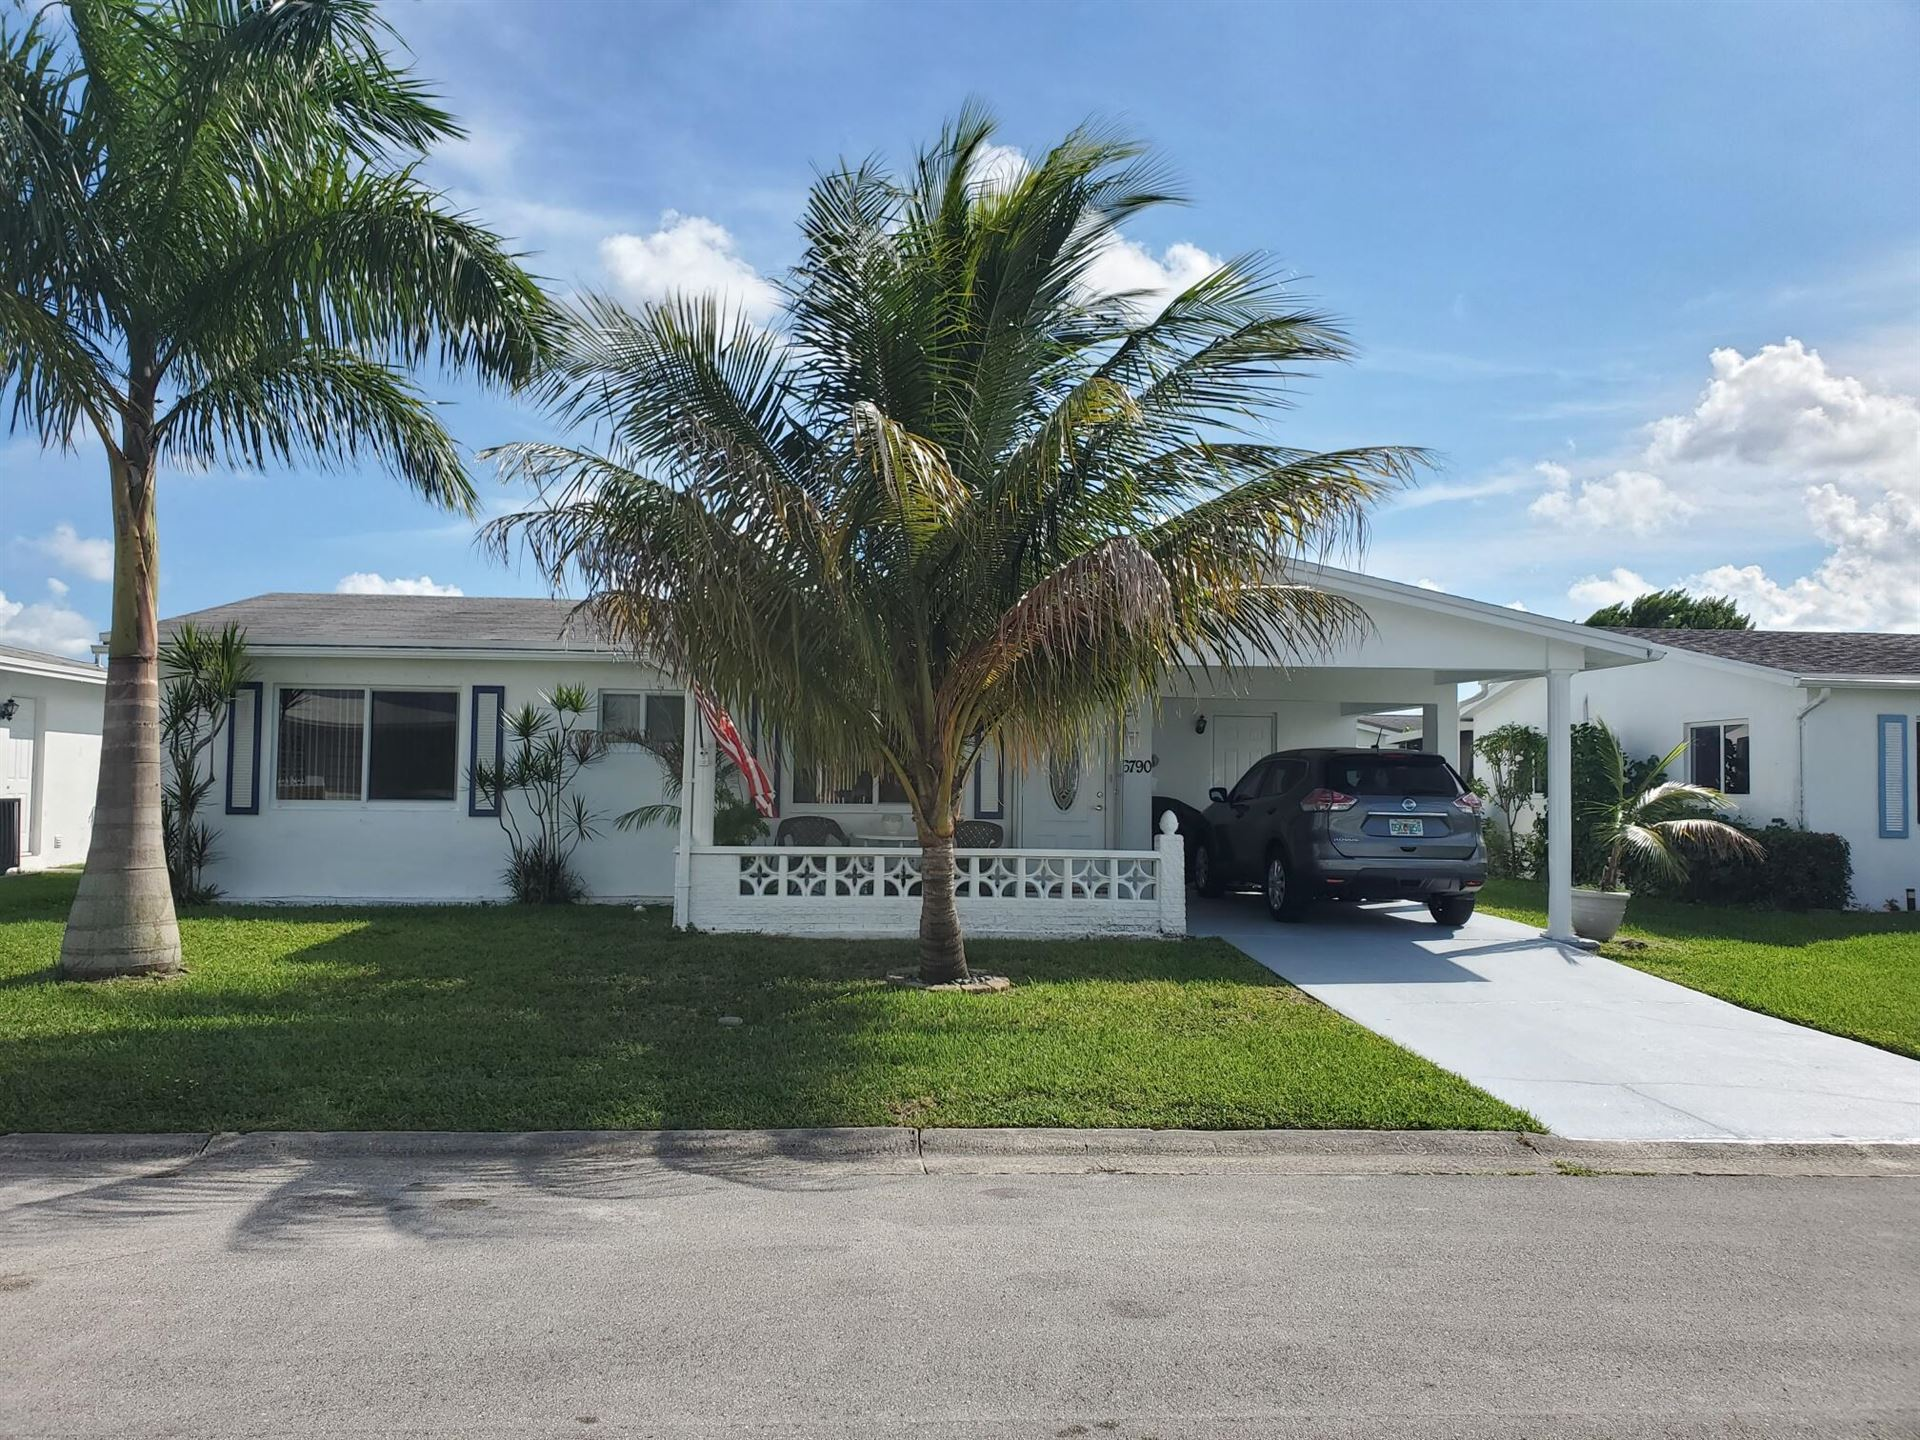 Photo of 6790 NW 15th Street, Margate, FL 33063 (MLS # RX-10750373)